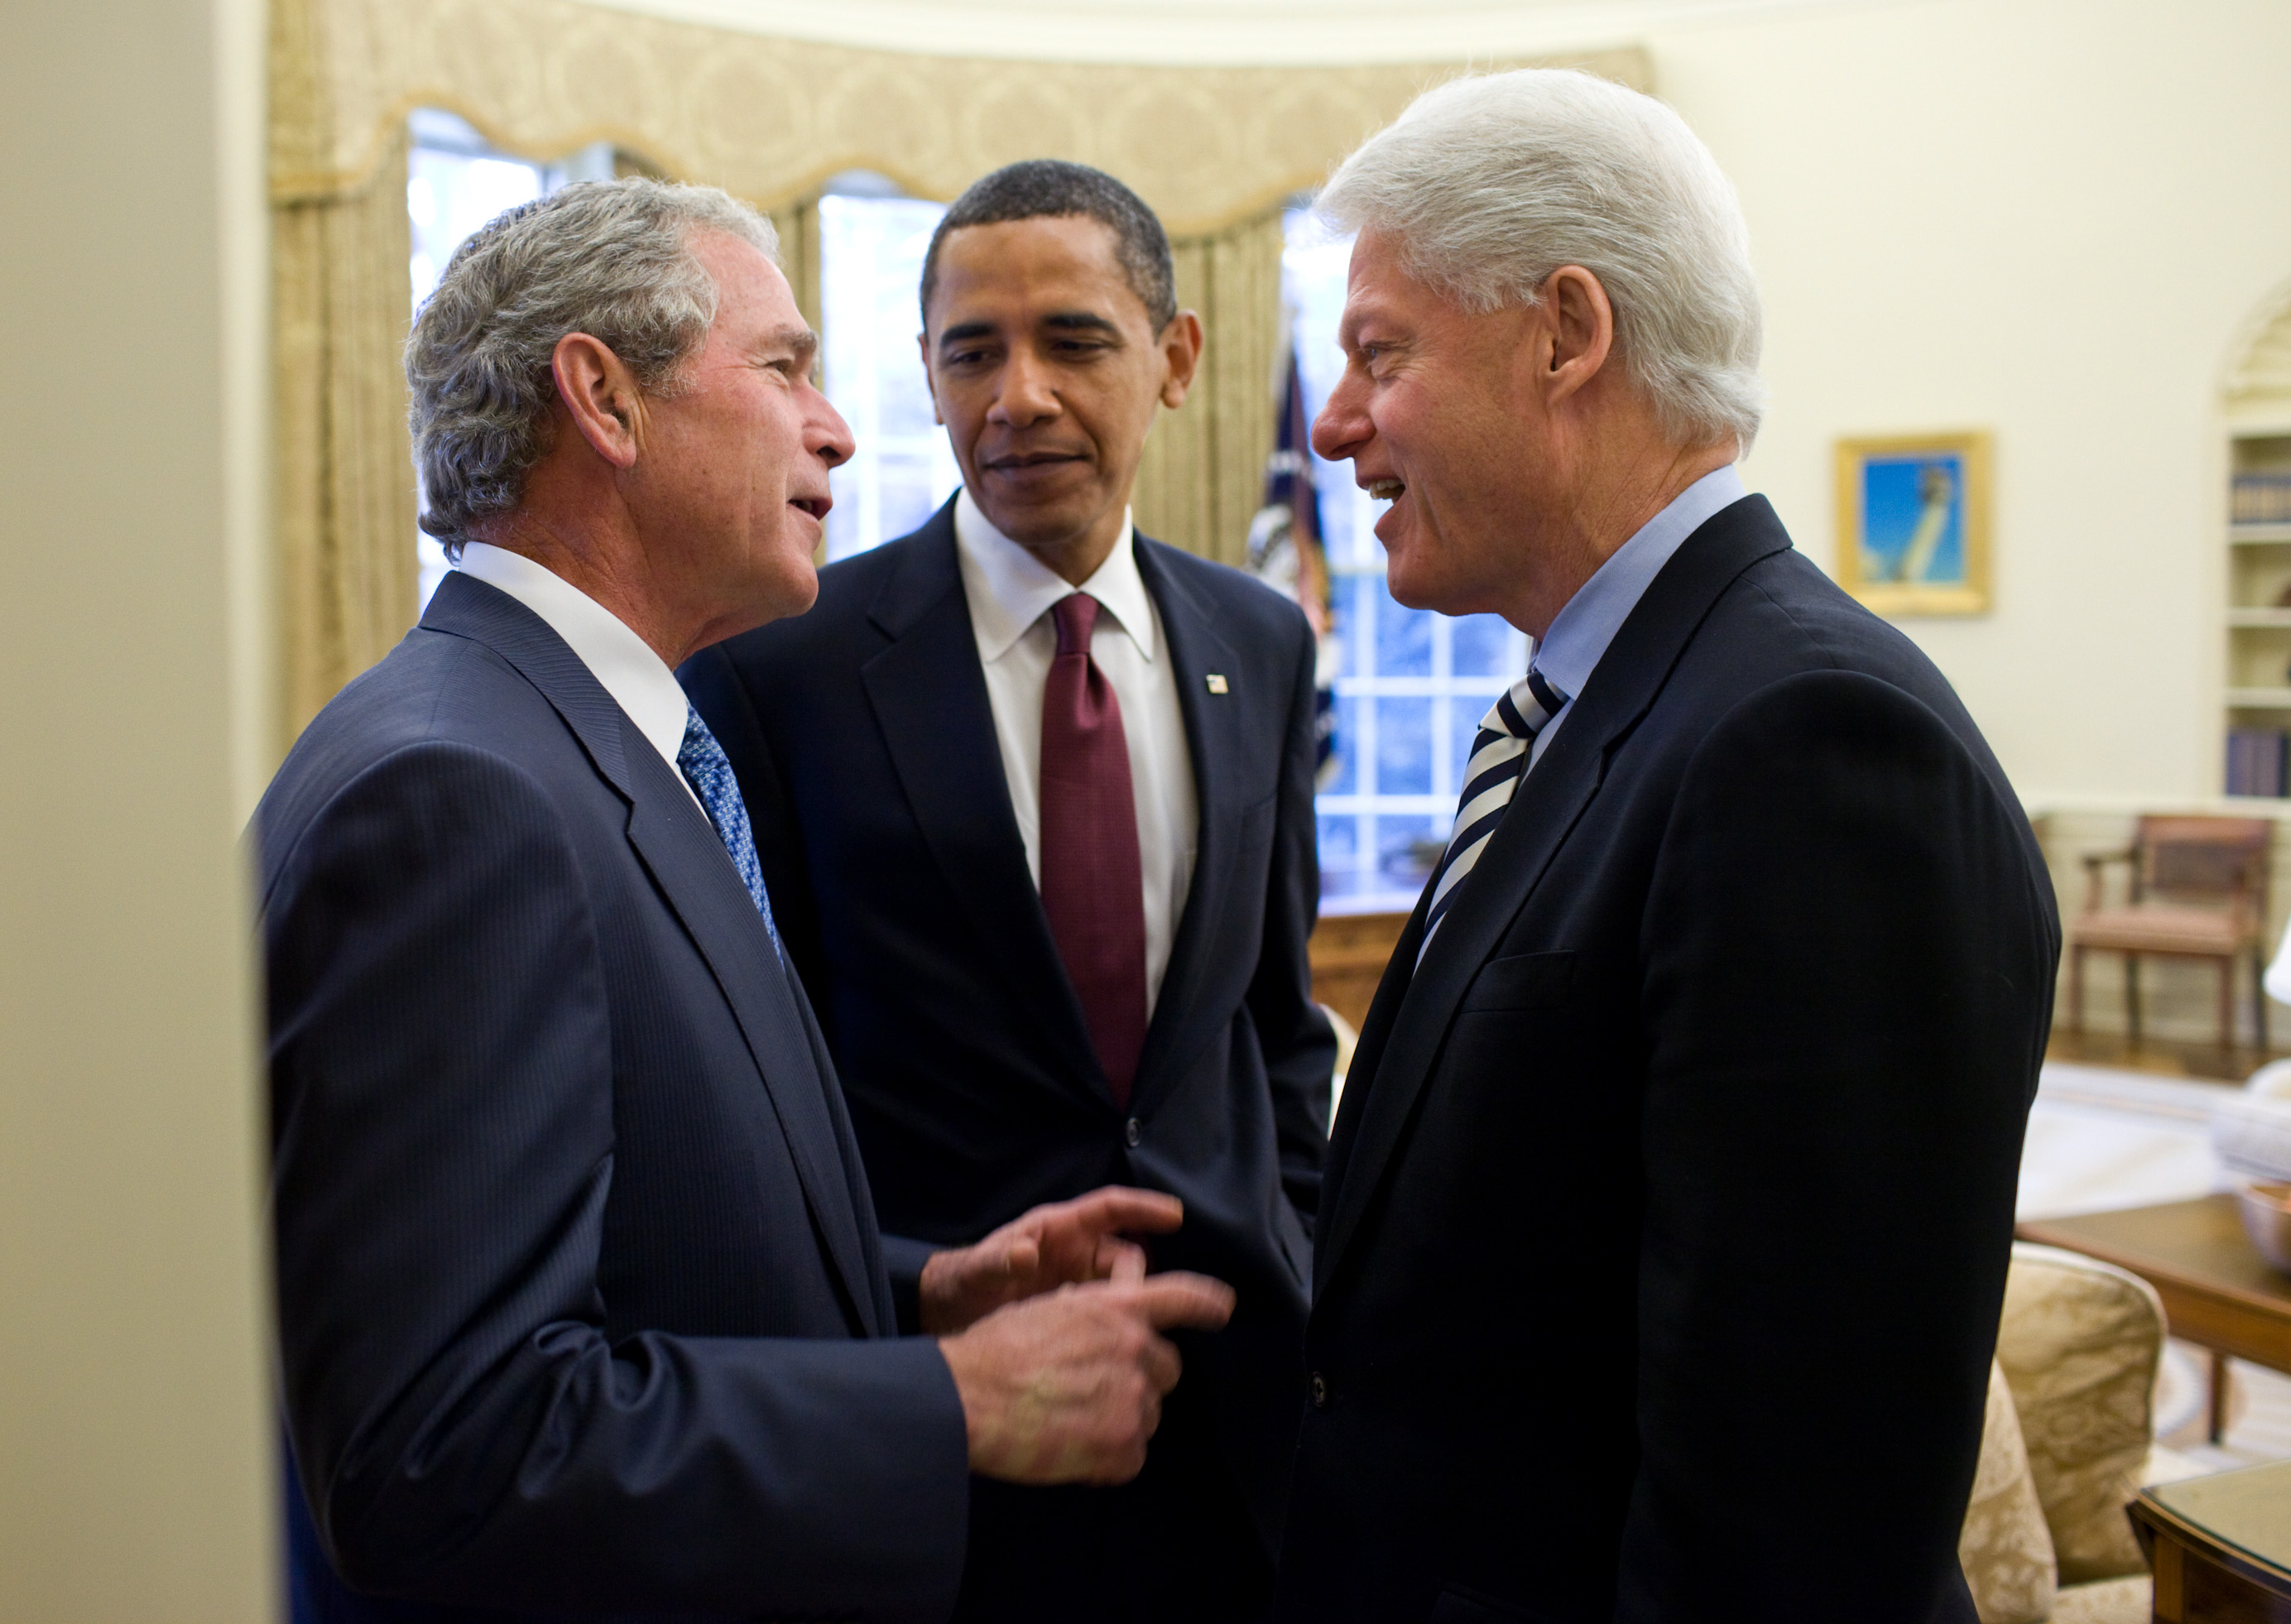 George W. Bush, Barack Obama and Bill Clinton in the Oval Office together, 2019. (Wikimedia Commons)